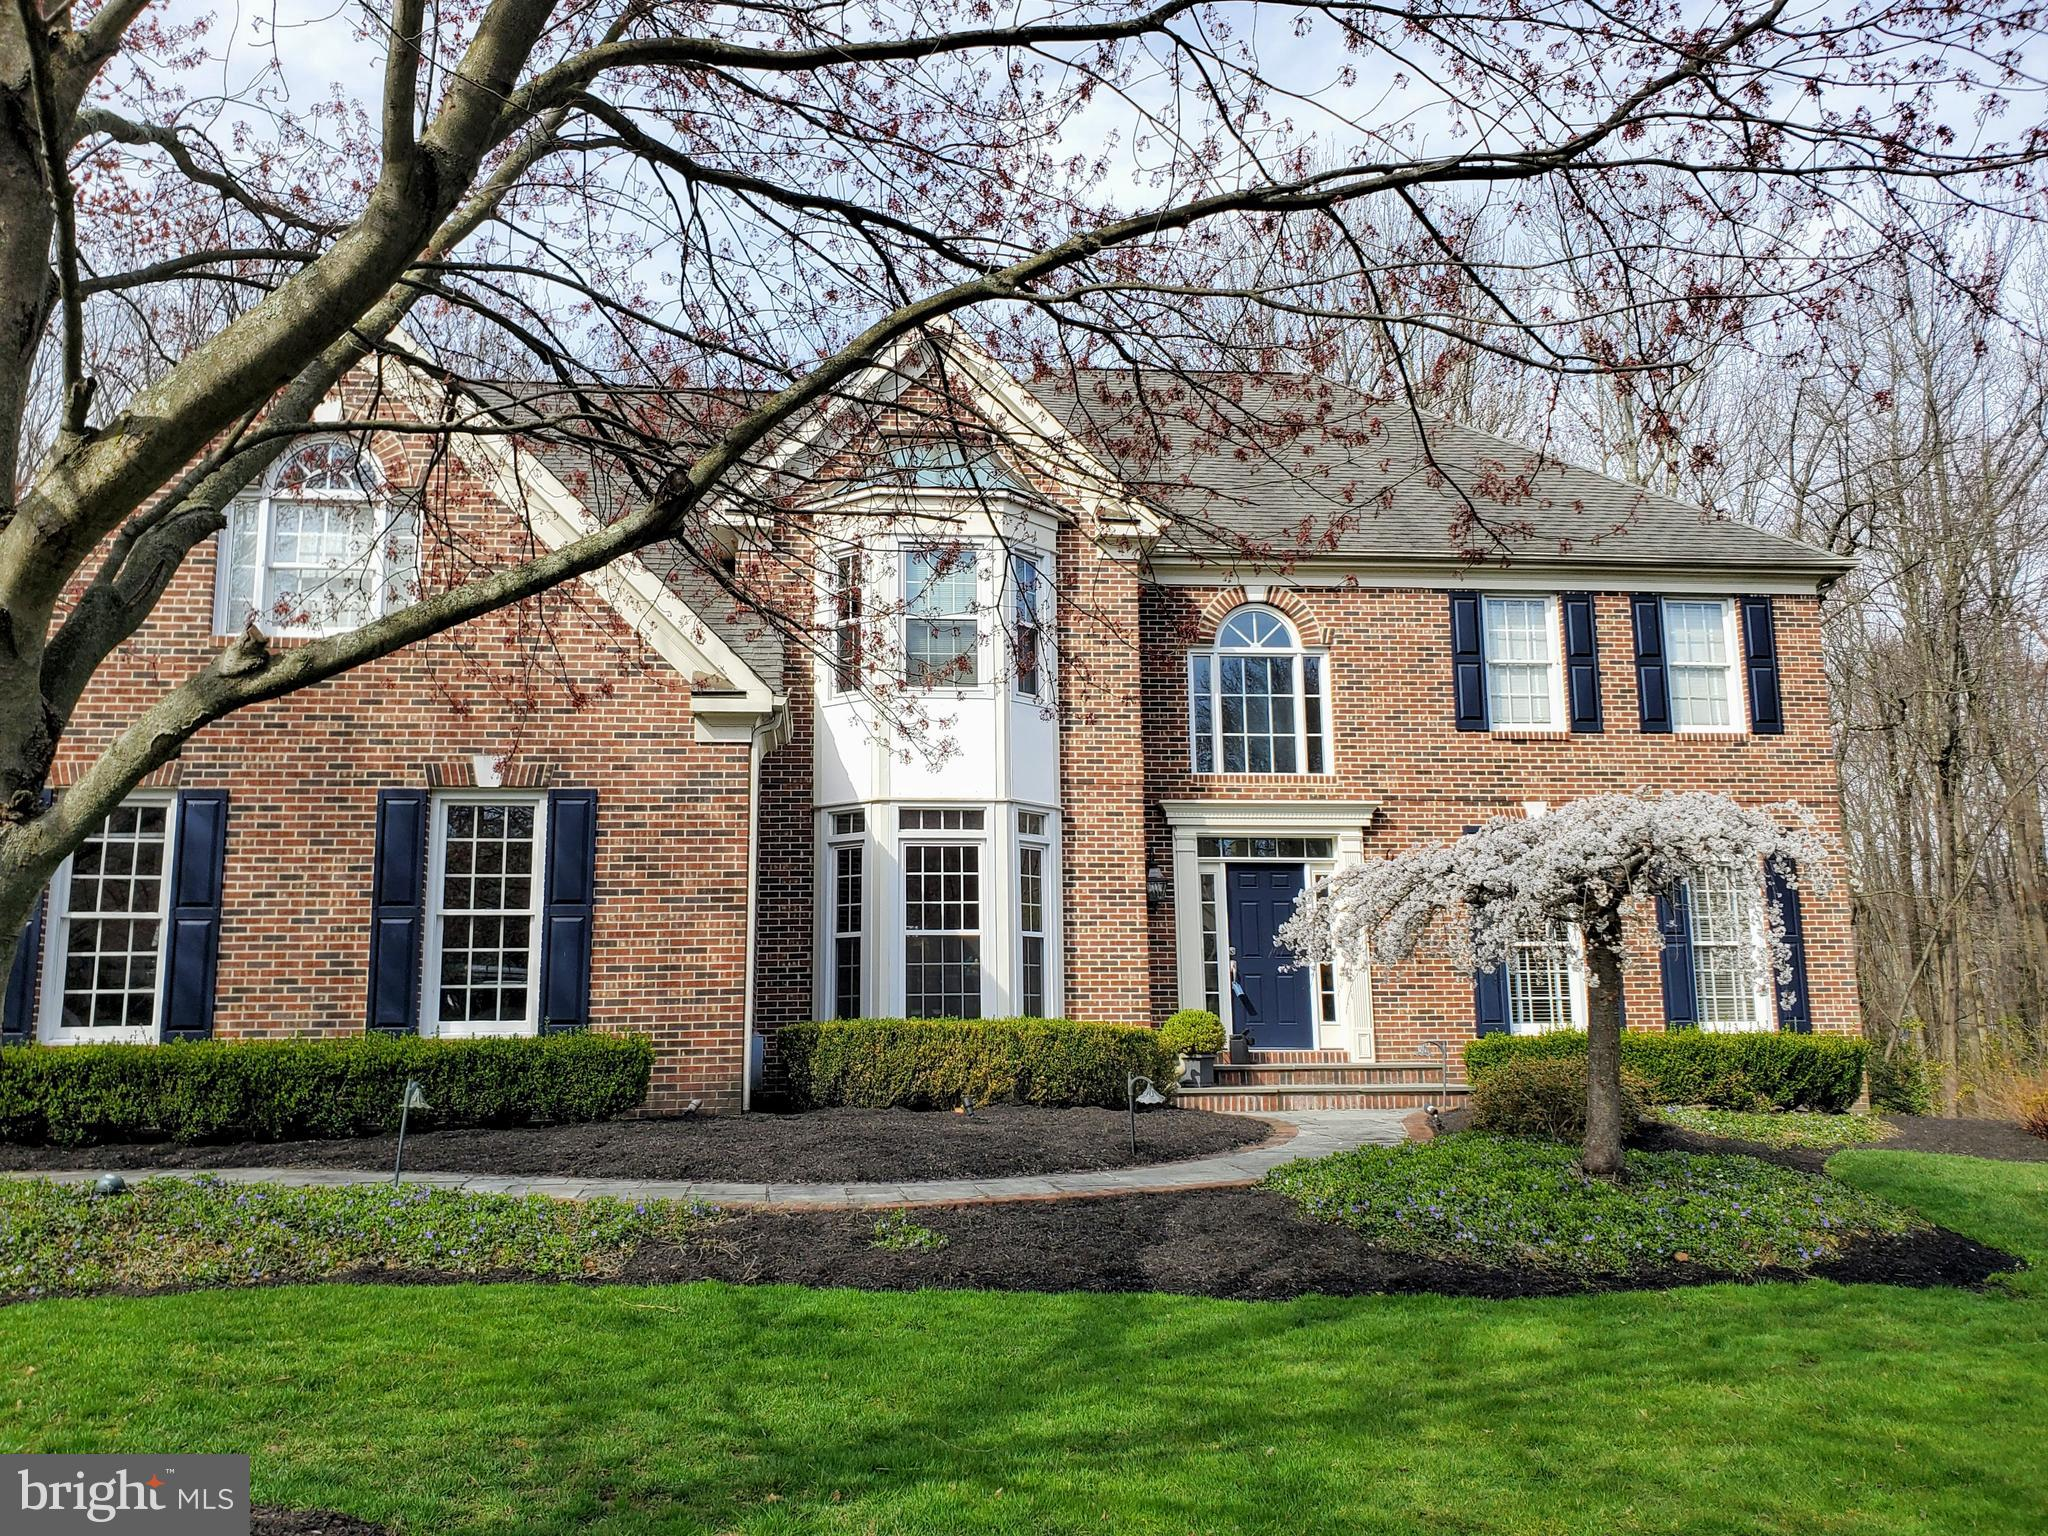 476 PRINCE WILLIAM COURT, YARDLEY, PA 19067